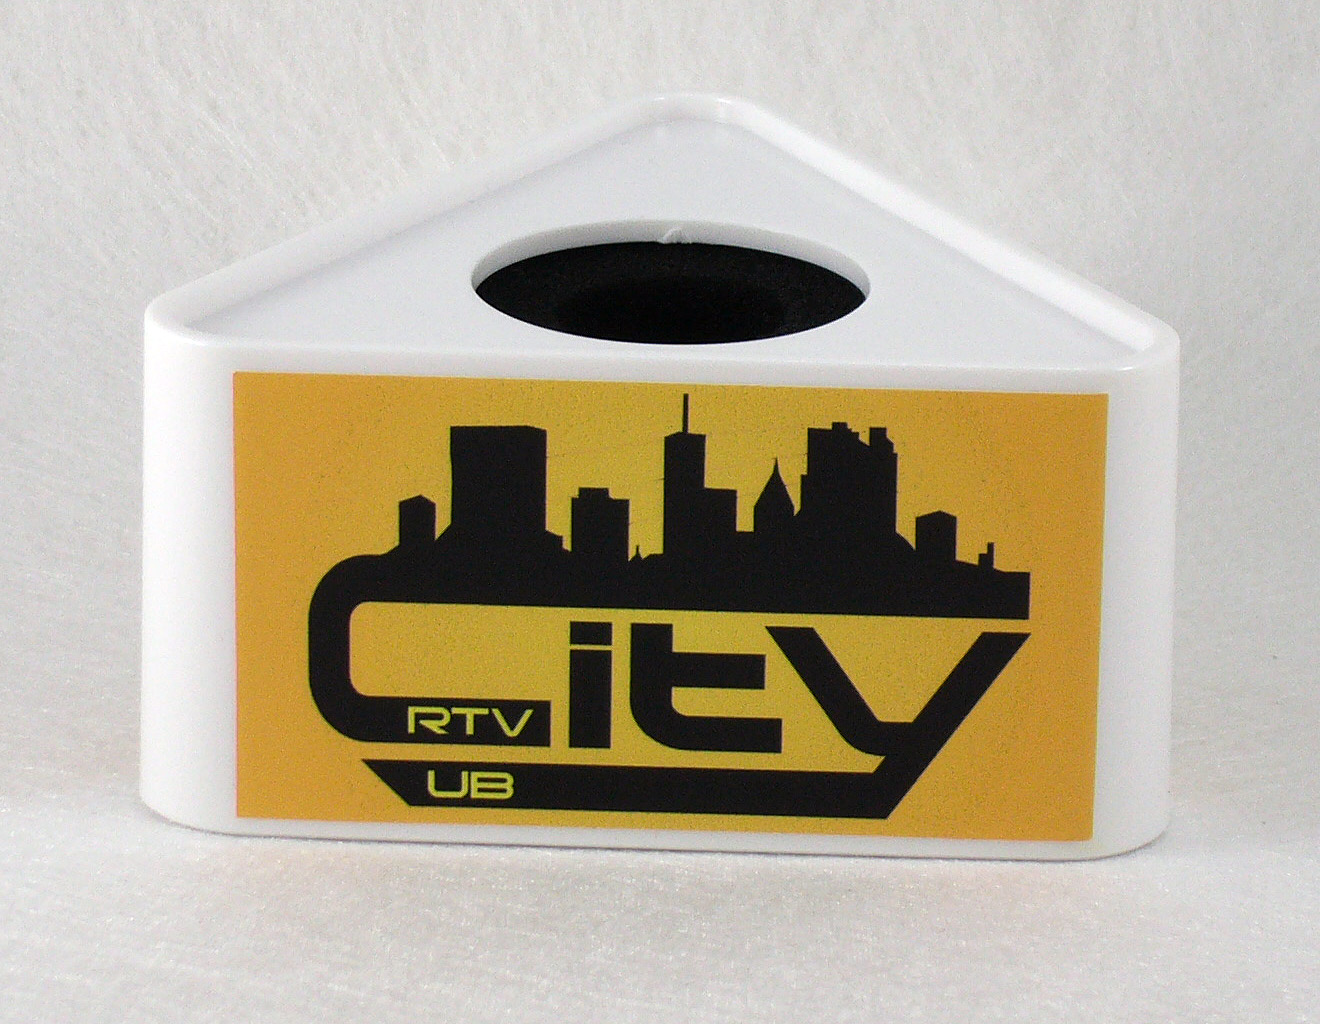 Mic Triangle RTV City